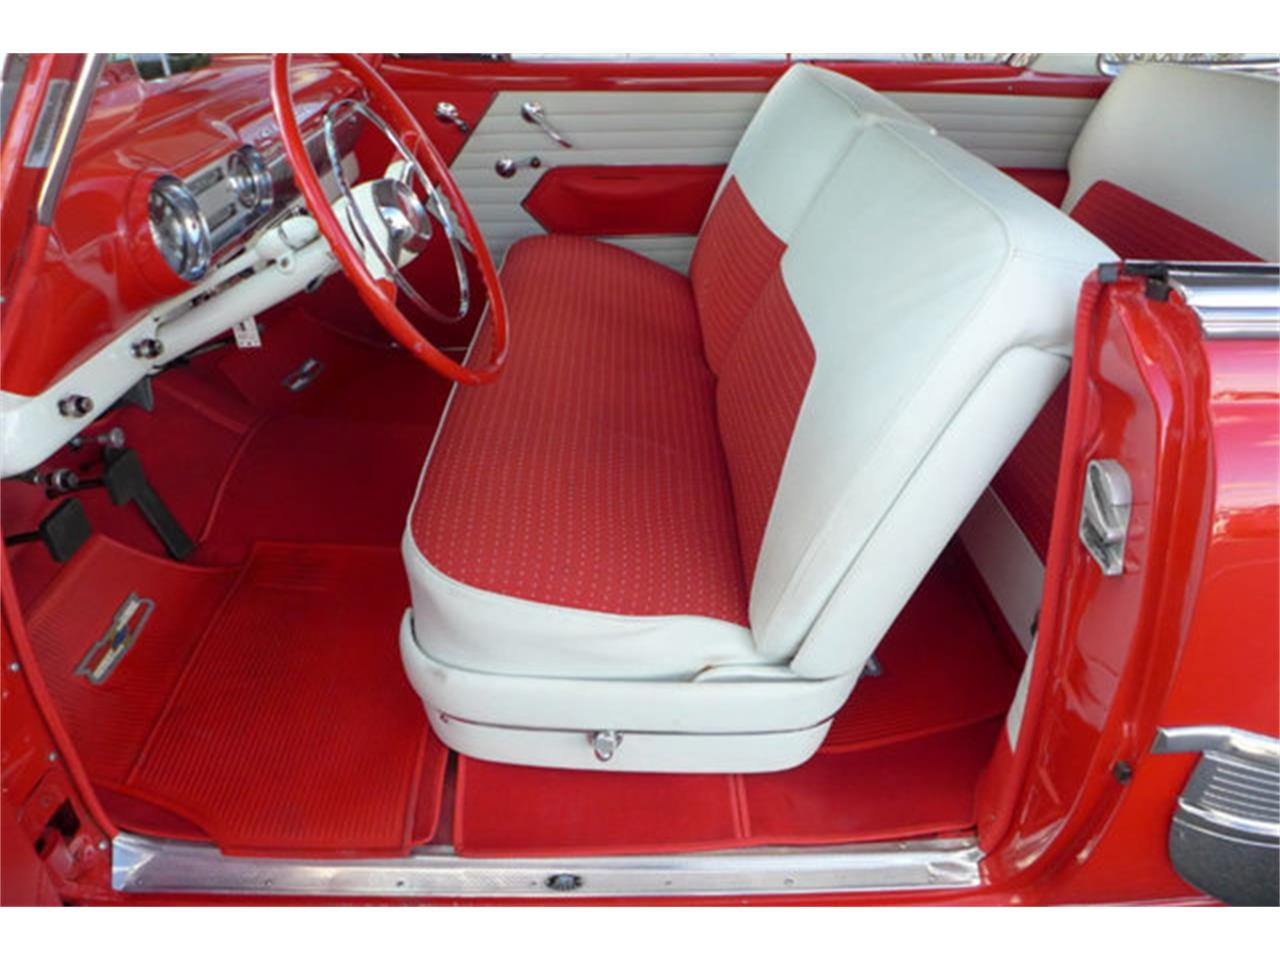 hight resolution of  wiring diagram database on 1954 chevrolet bel air for sale cliccars com cc 1169336 on